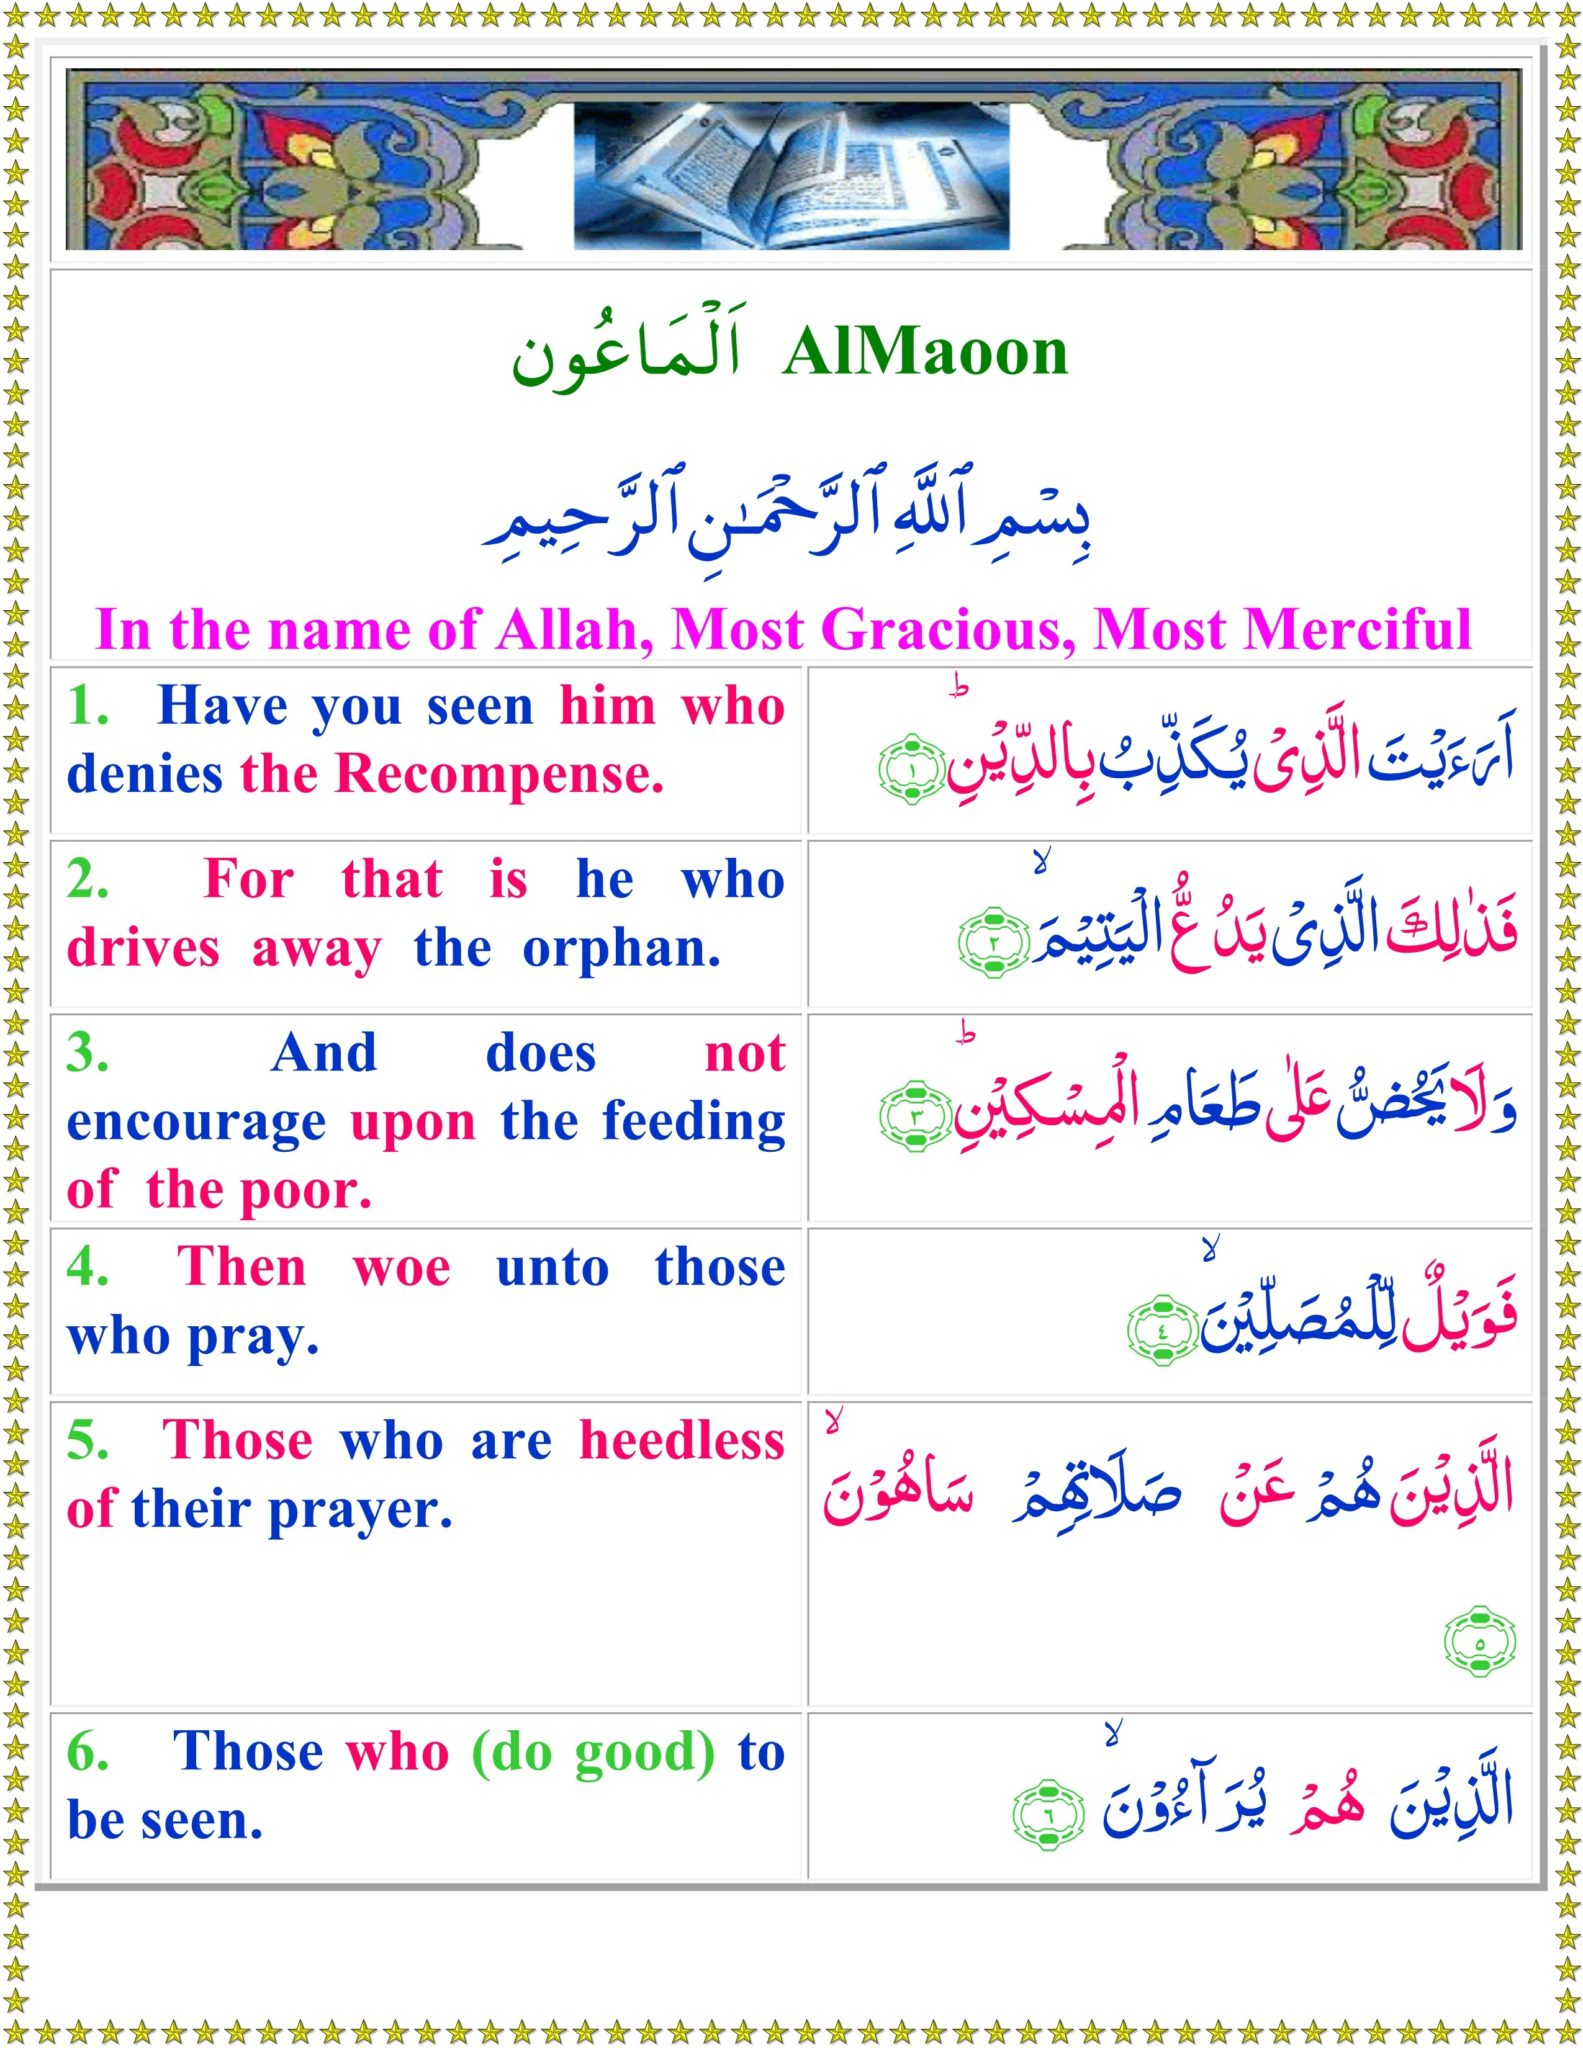 Surah Maun translation in English